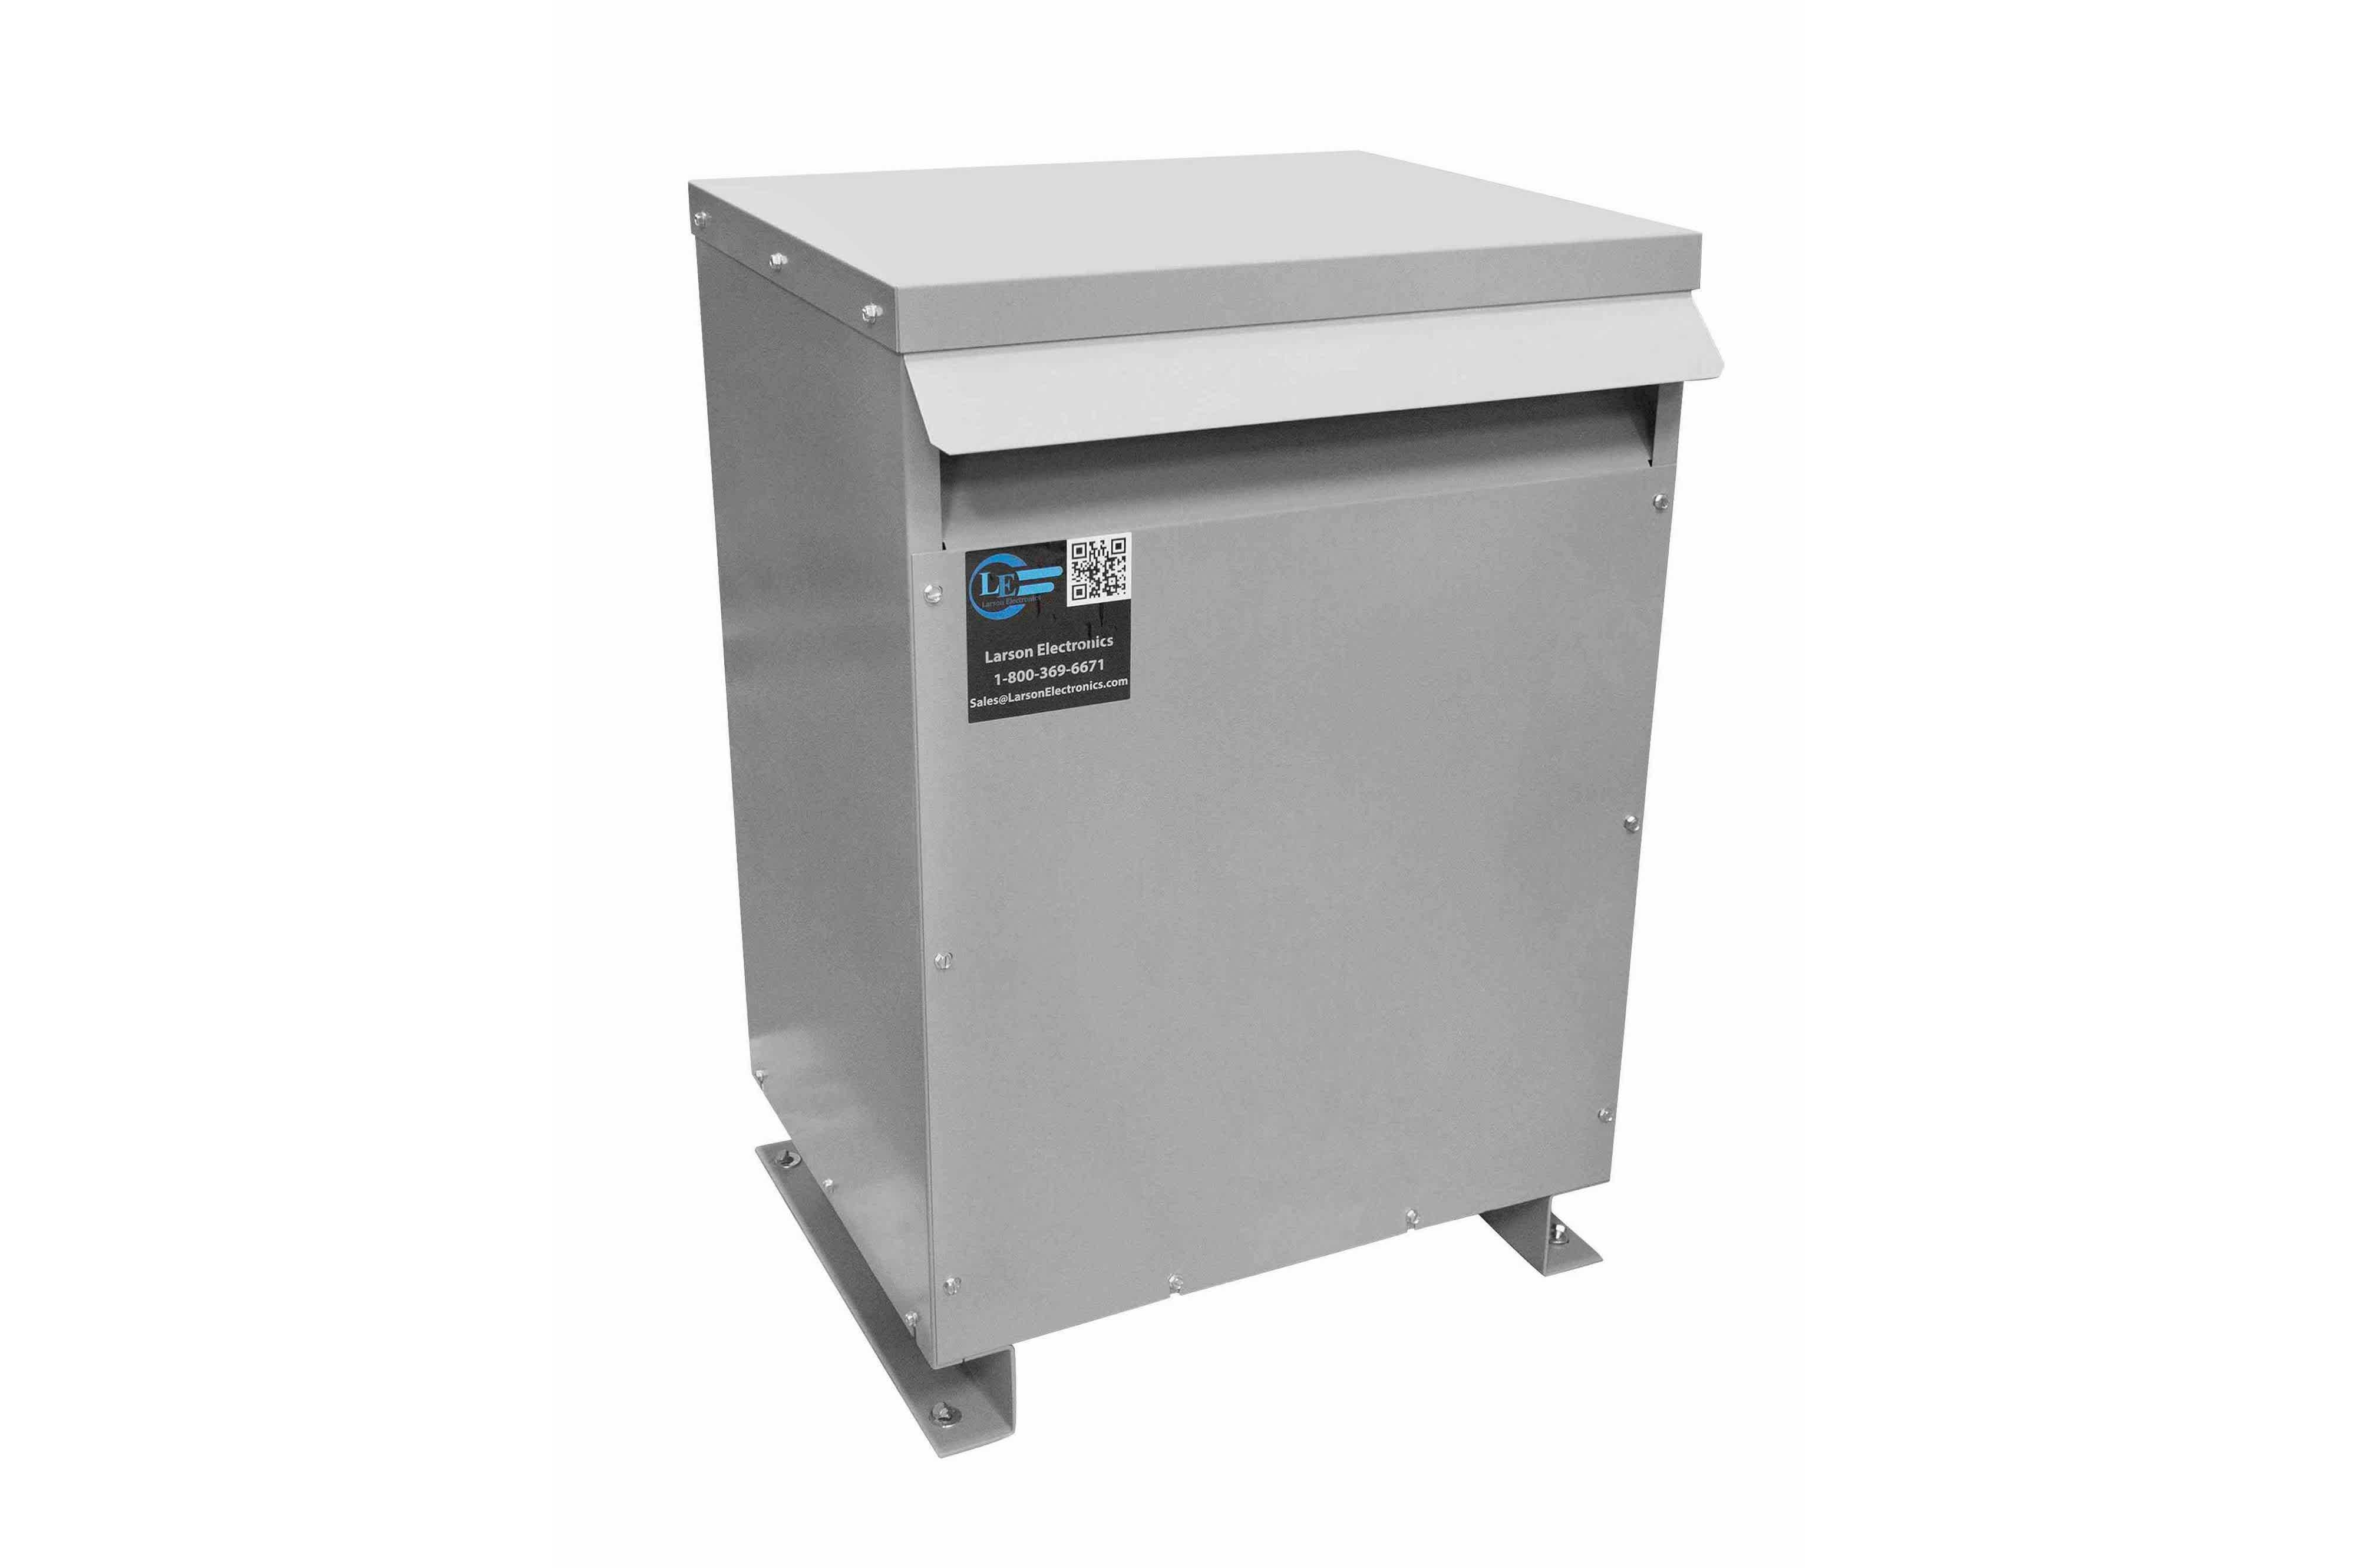 175 kVA 3PH Isolation Transformer, 240V Wye Primary, 600V Delta Secondary, N3R, Ventilated, 60 Hz